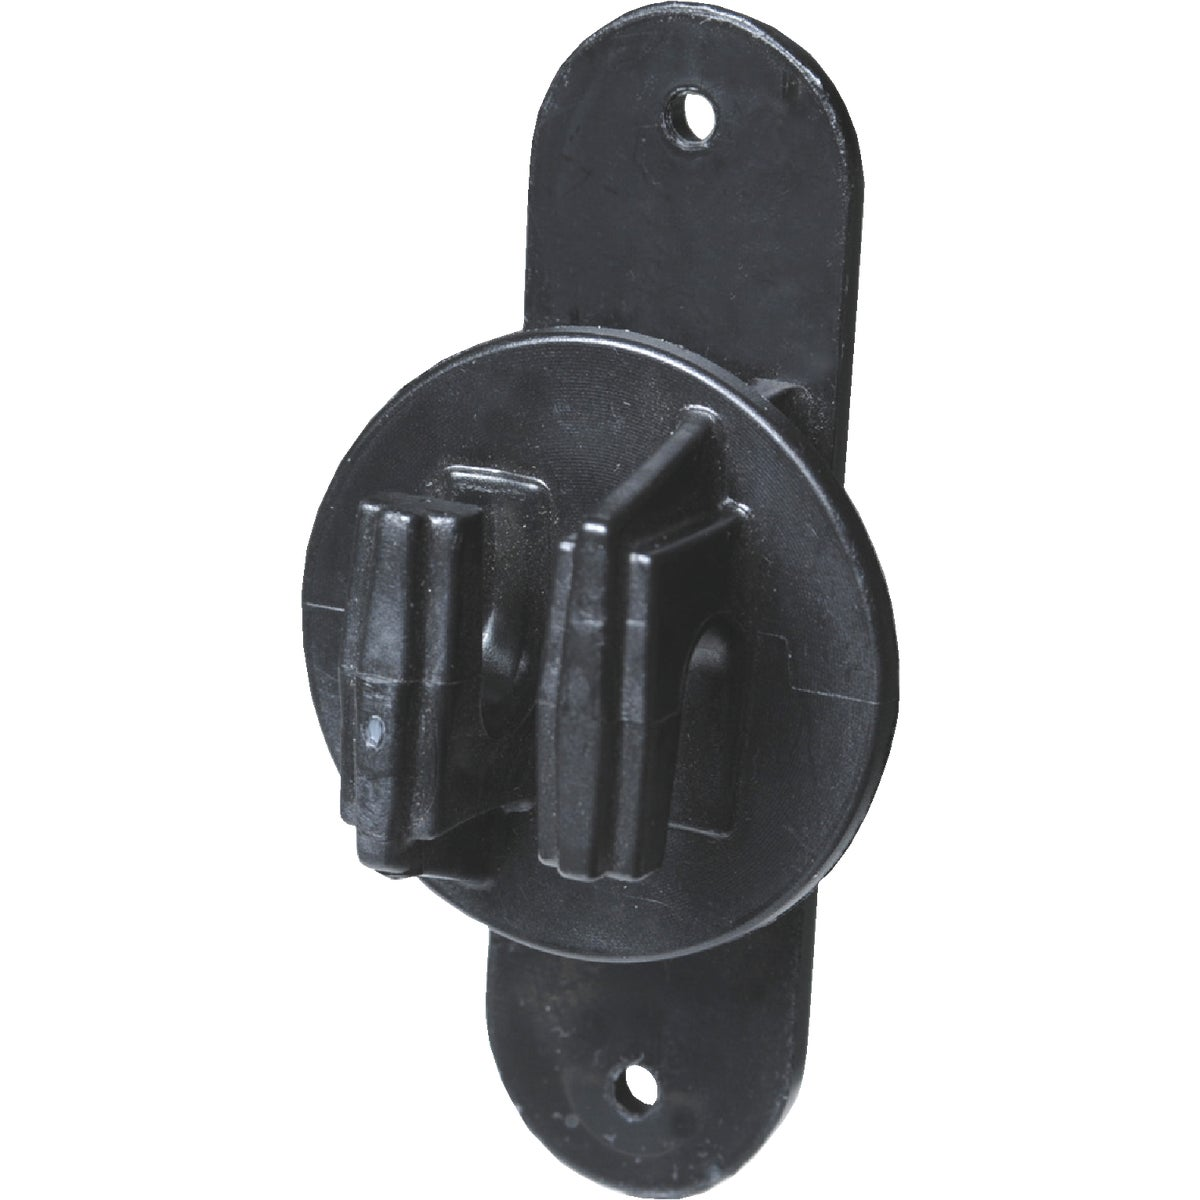 25PC BLK WPOST INSULATOR - SNUG-HTN by Dare Products Inc